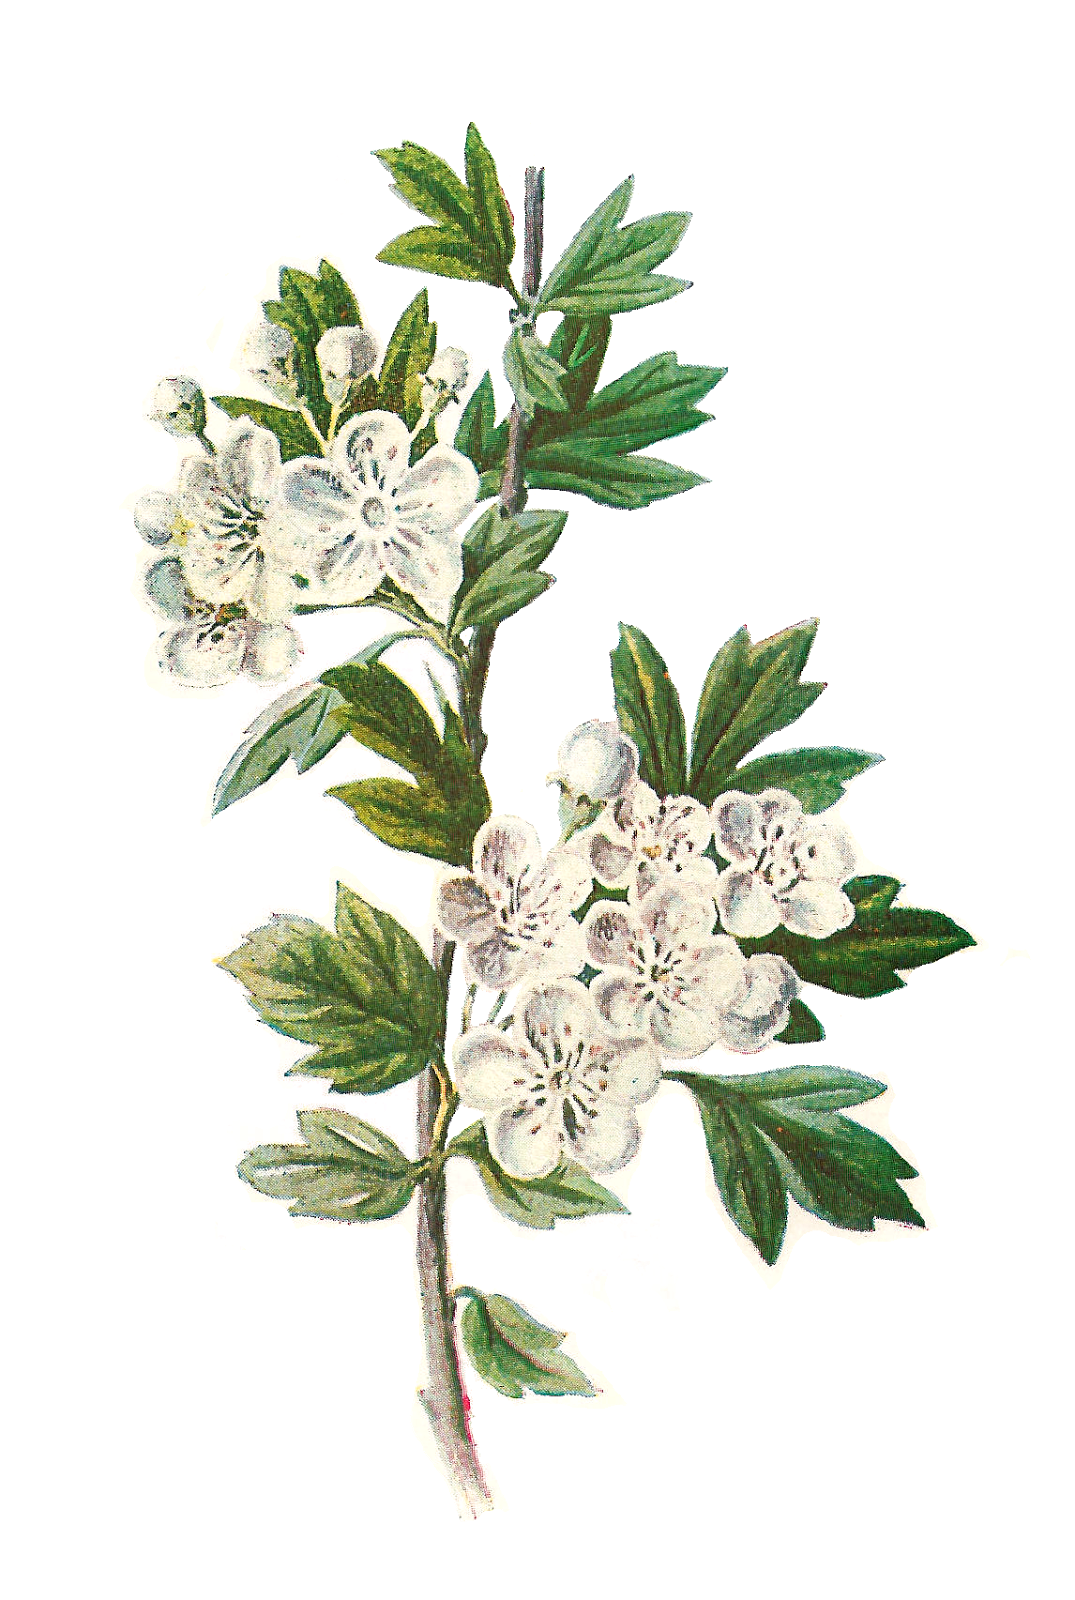 Hawthorn flower clipart clipart library download Antique Images: Digital Wildflower Hawthorn Clip Art Botanical ... clipart library download